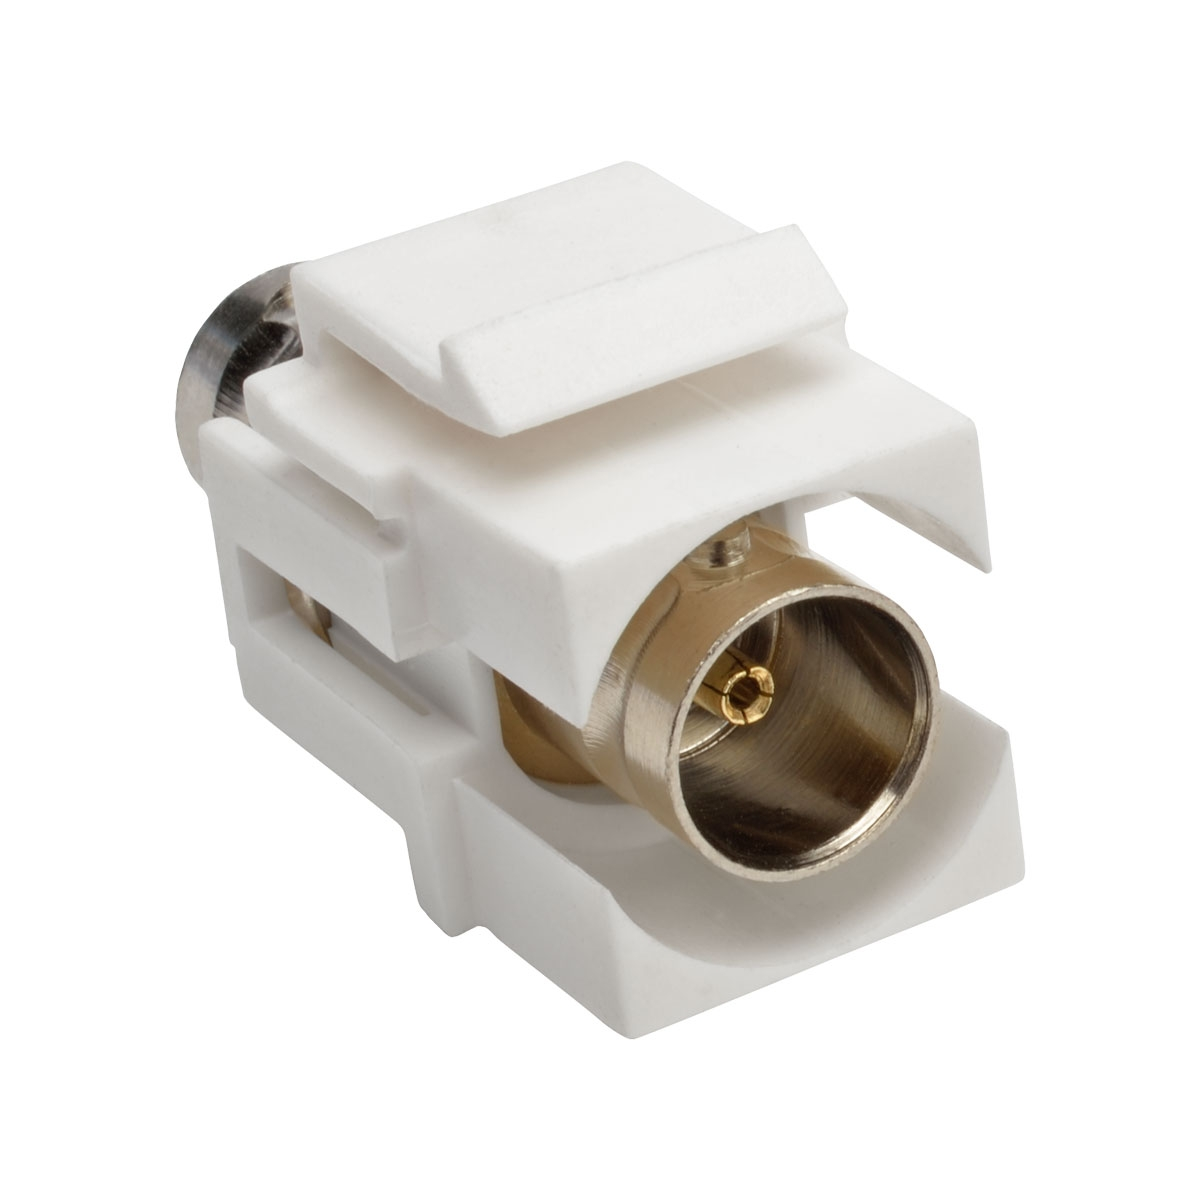 A230 001 Kp Bnc All In One Keystone Panel Mount Coupler